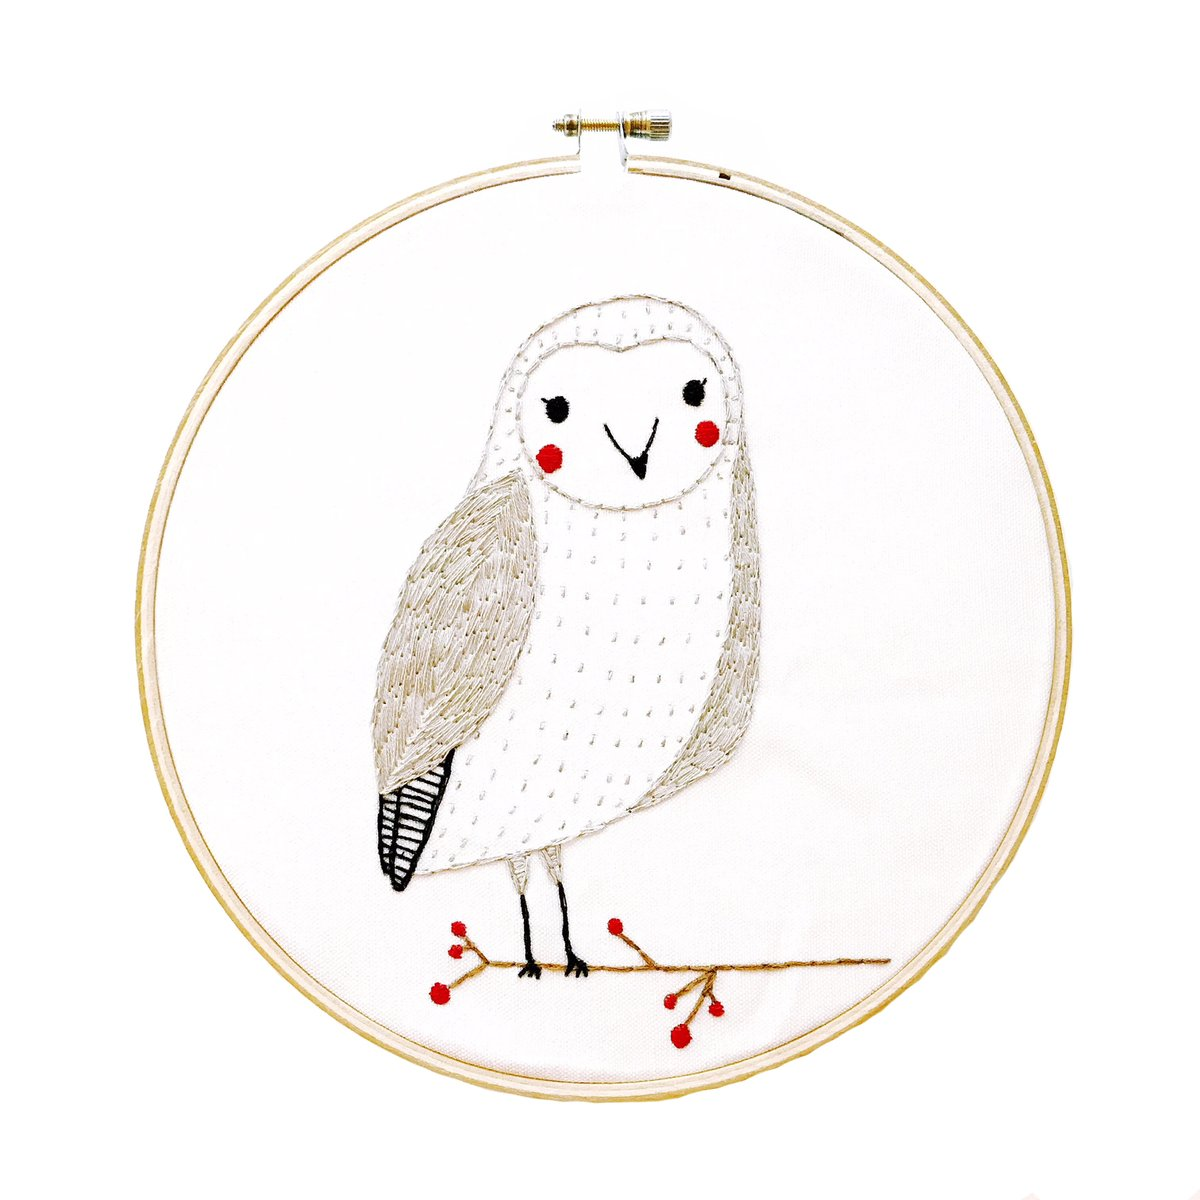 Owl Embroidery Sampler